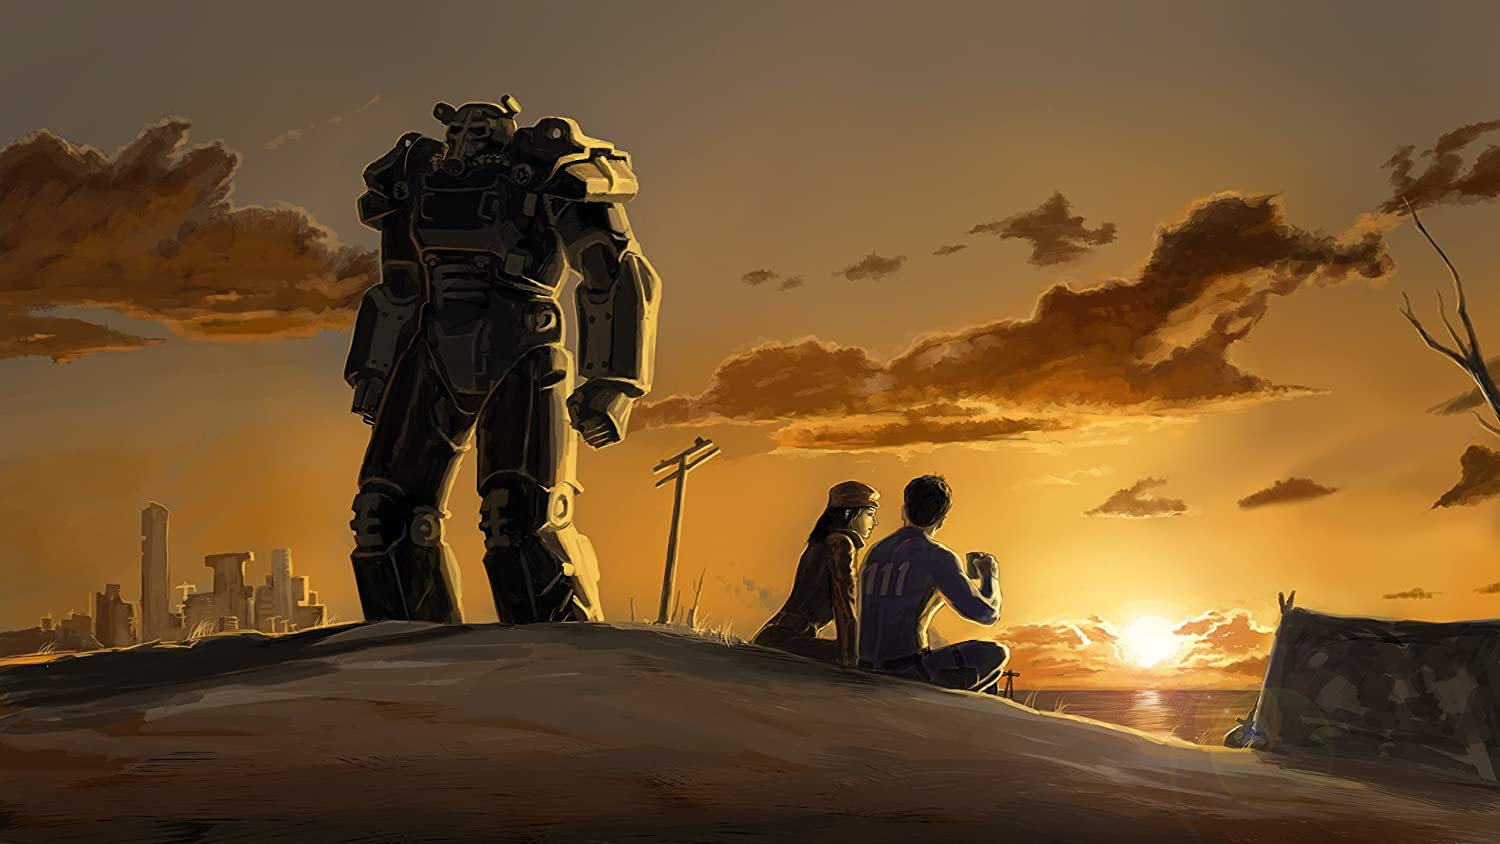 Video Game Wall Decoration,Piper Wright Wall Decor,Power Armor Artwork,Fallout 4 Art Poster, Sole Survivor Art Print Size 24''x32'' (61x81 cm)